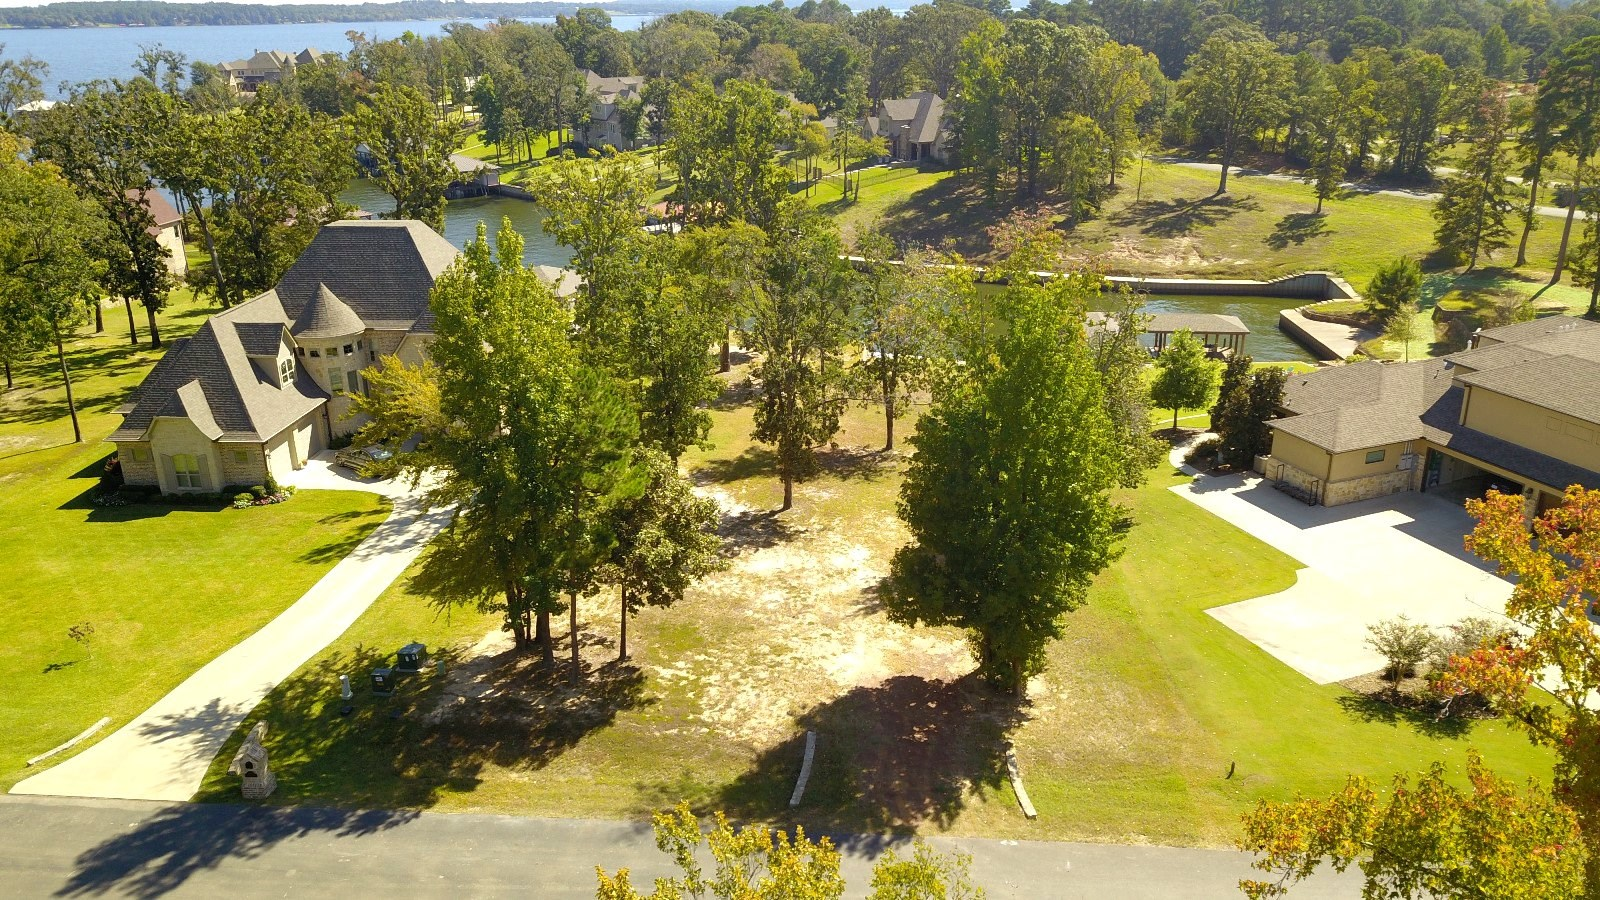 WATERFRONT LOT FOR SALE IN BROWN'S LANDING, LAKE PALESTINE